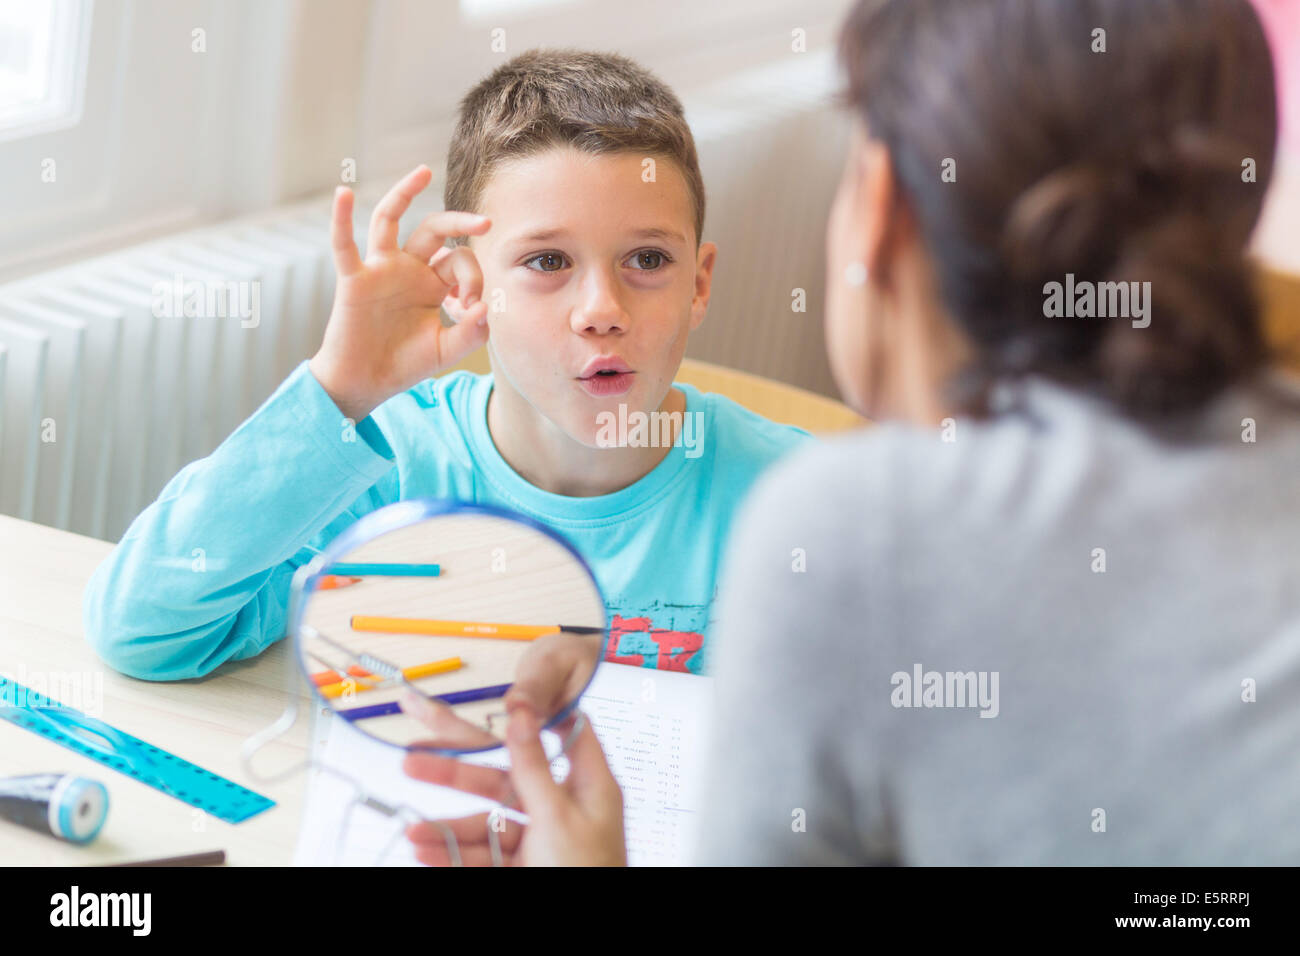 7 year old boy during speech therapy session. - Stock Image